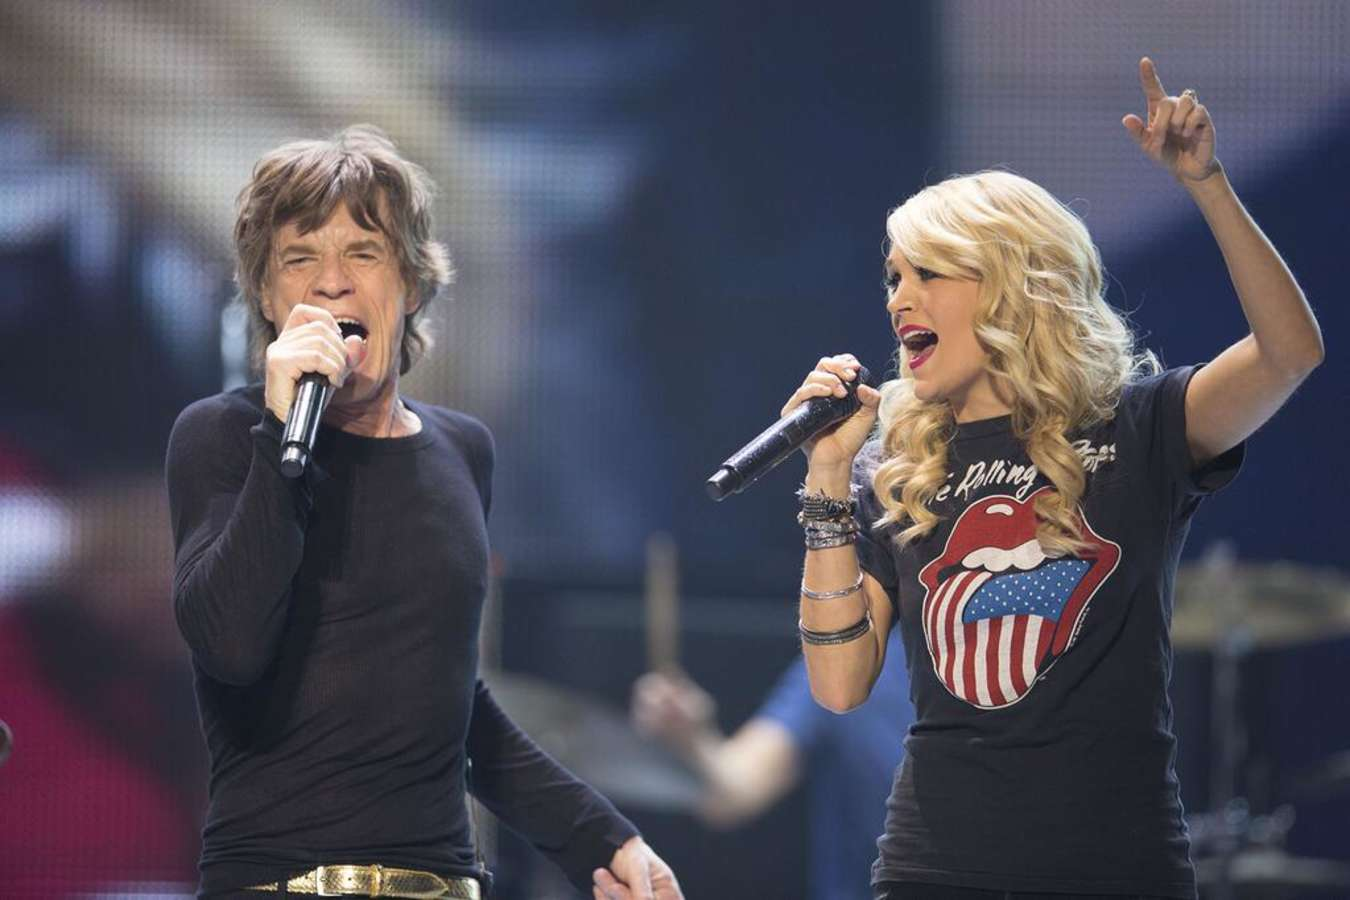 Carrie Underwood and The Rolling Stones on stage in ...